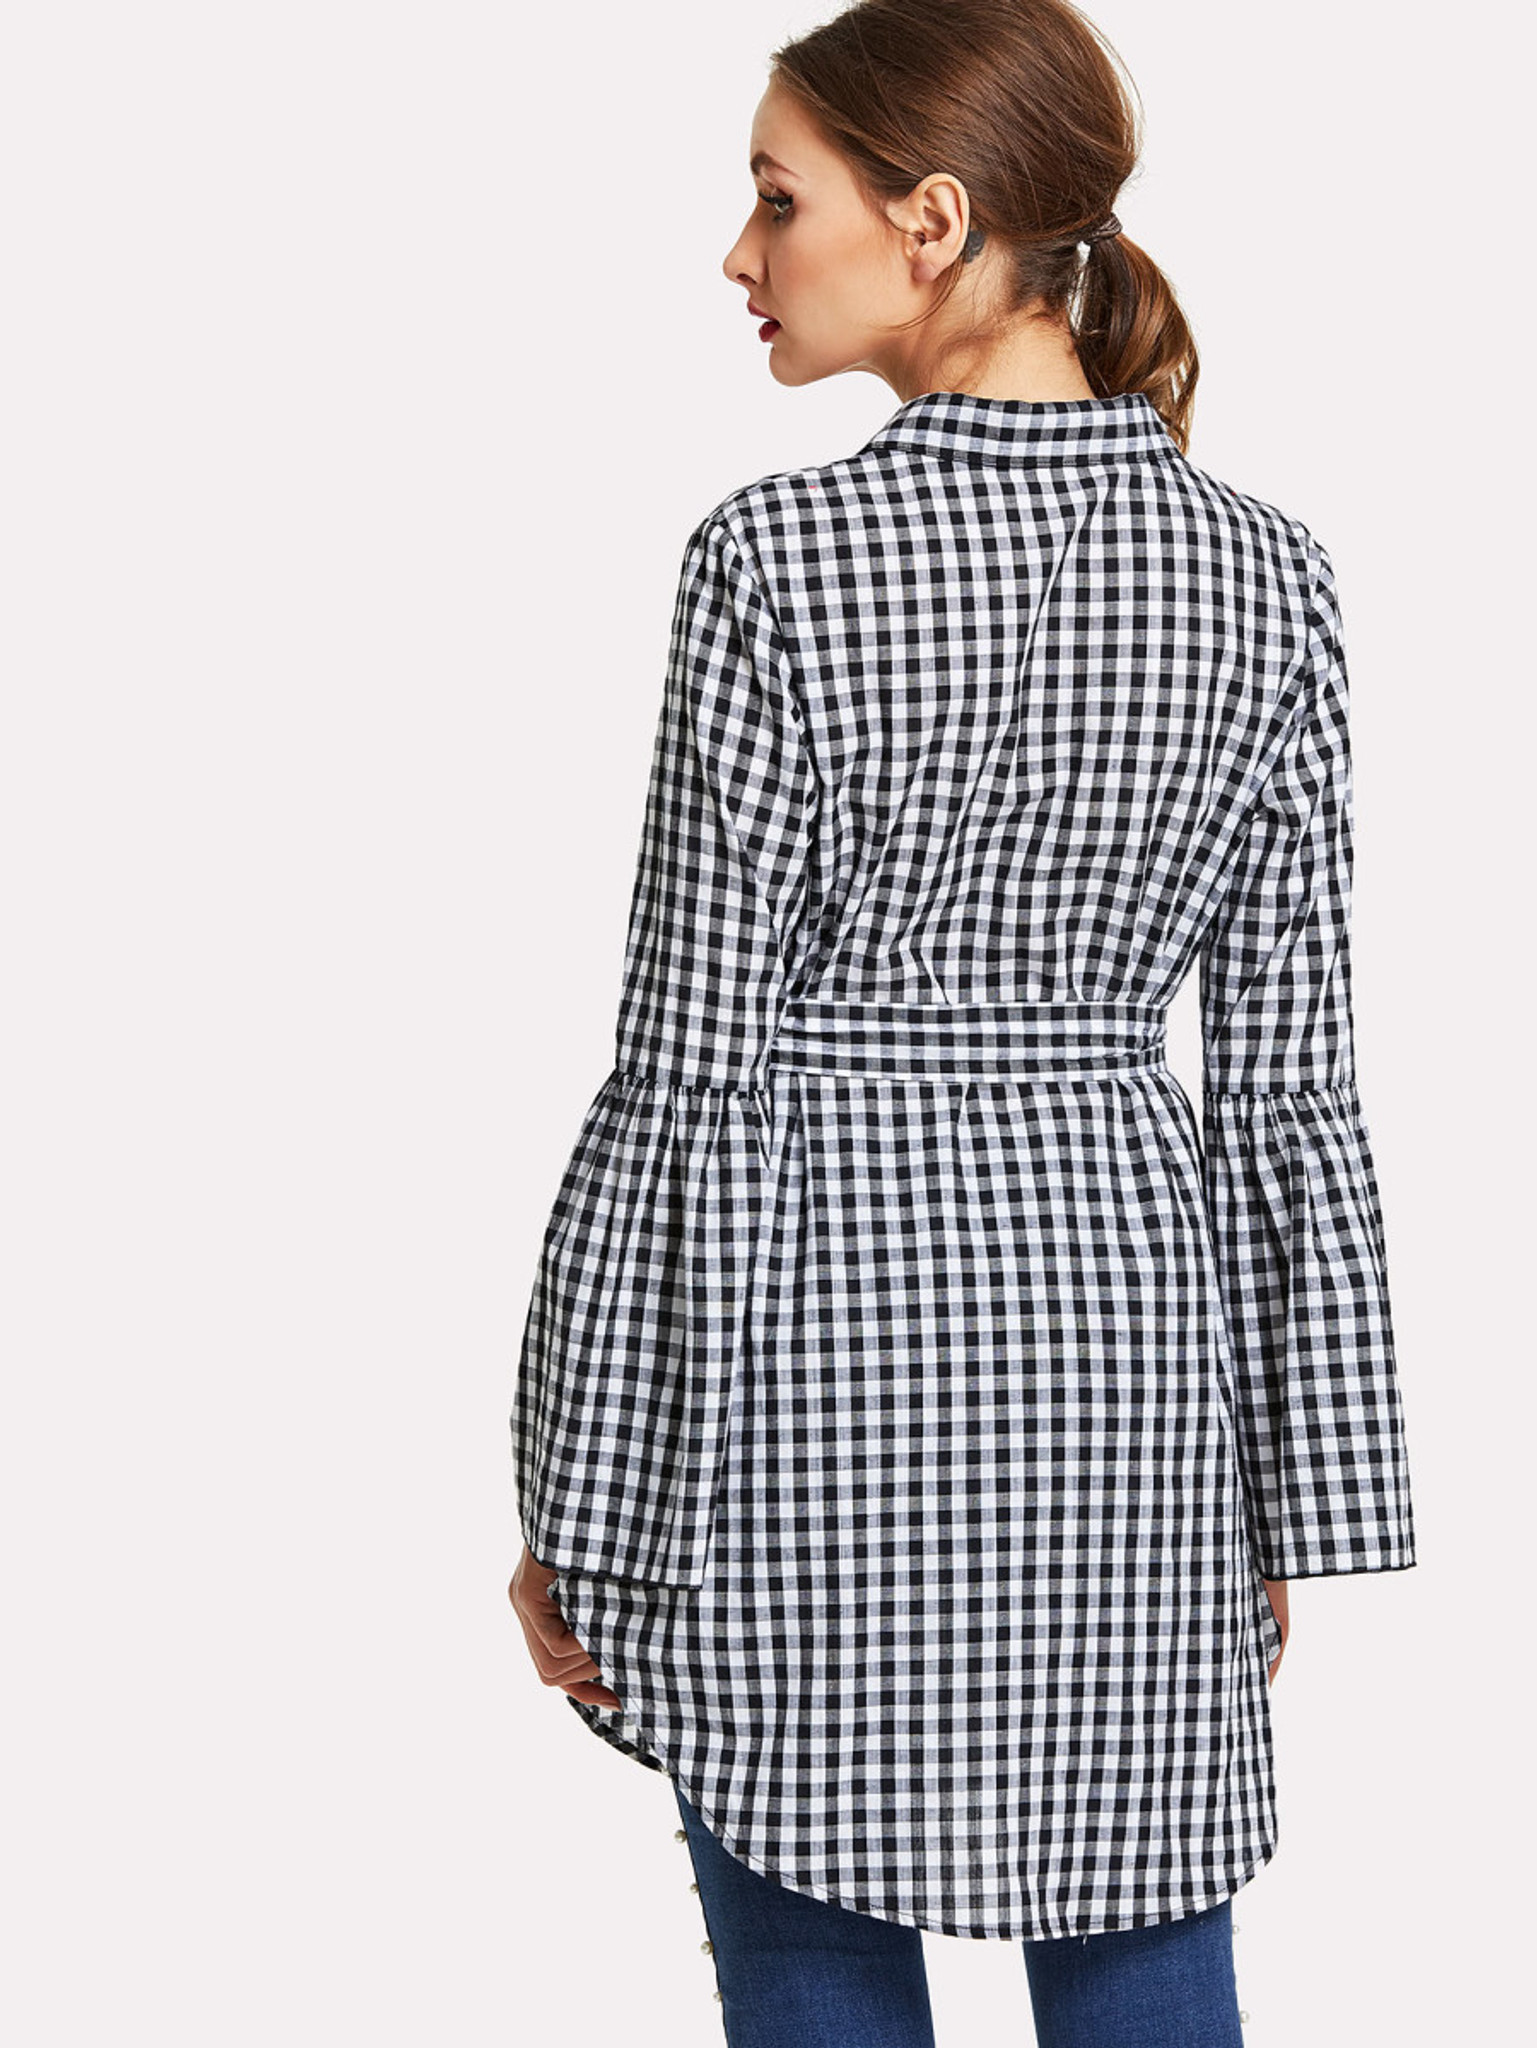 Fifth Avenue Women's Gingham Self Tie Shirt Dress - Black and White